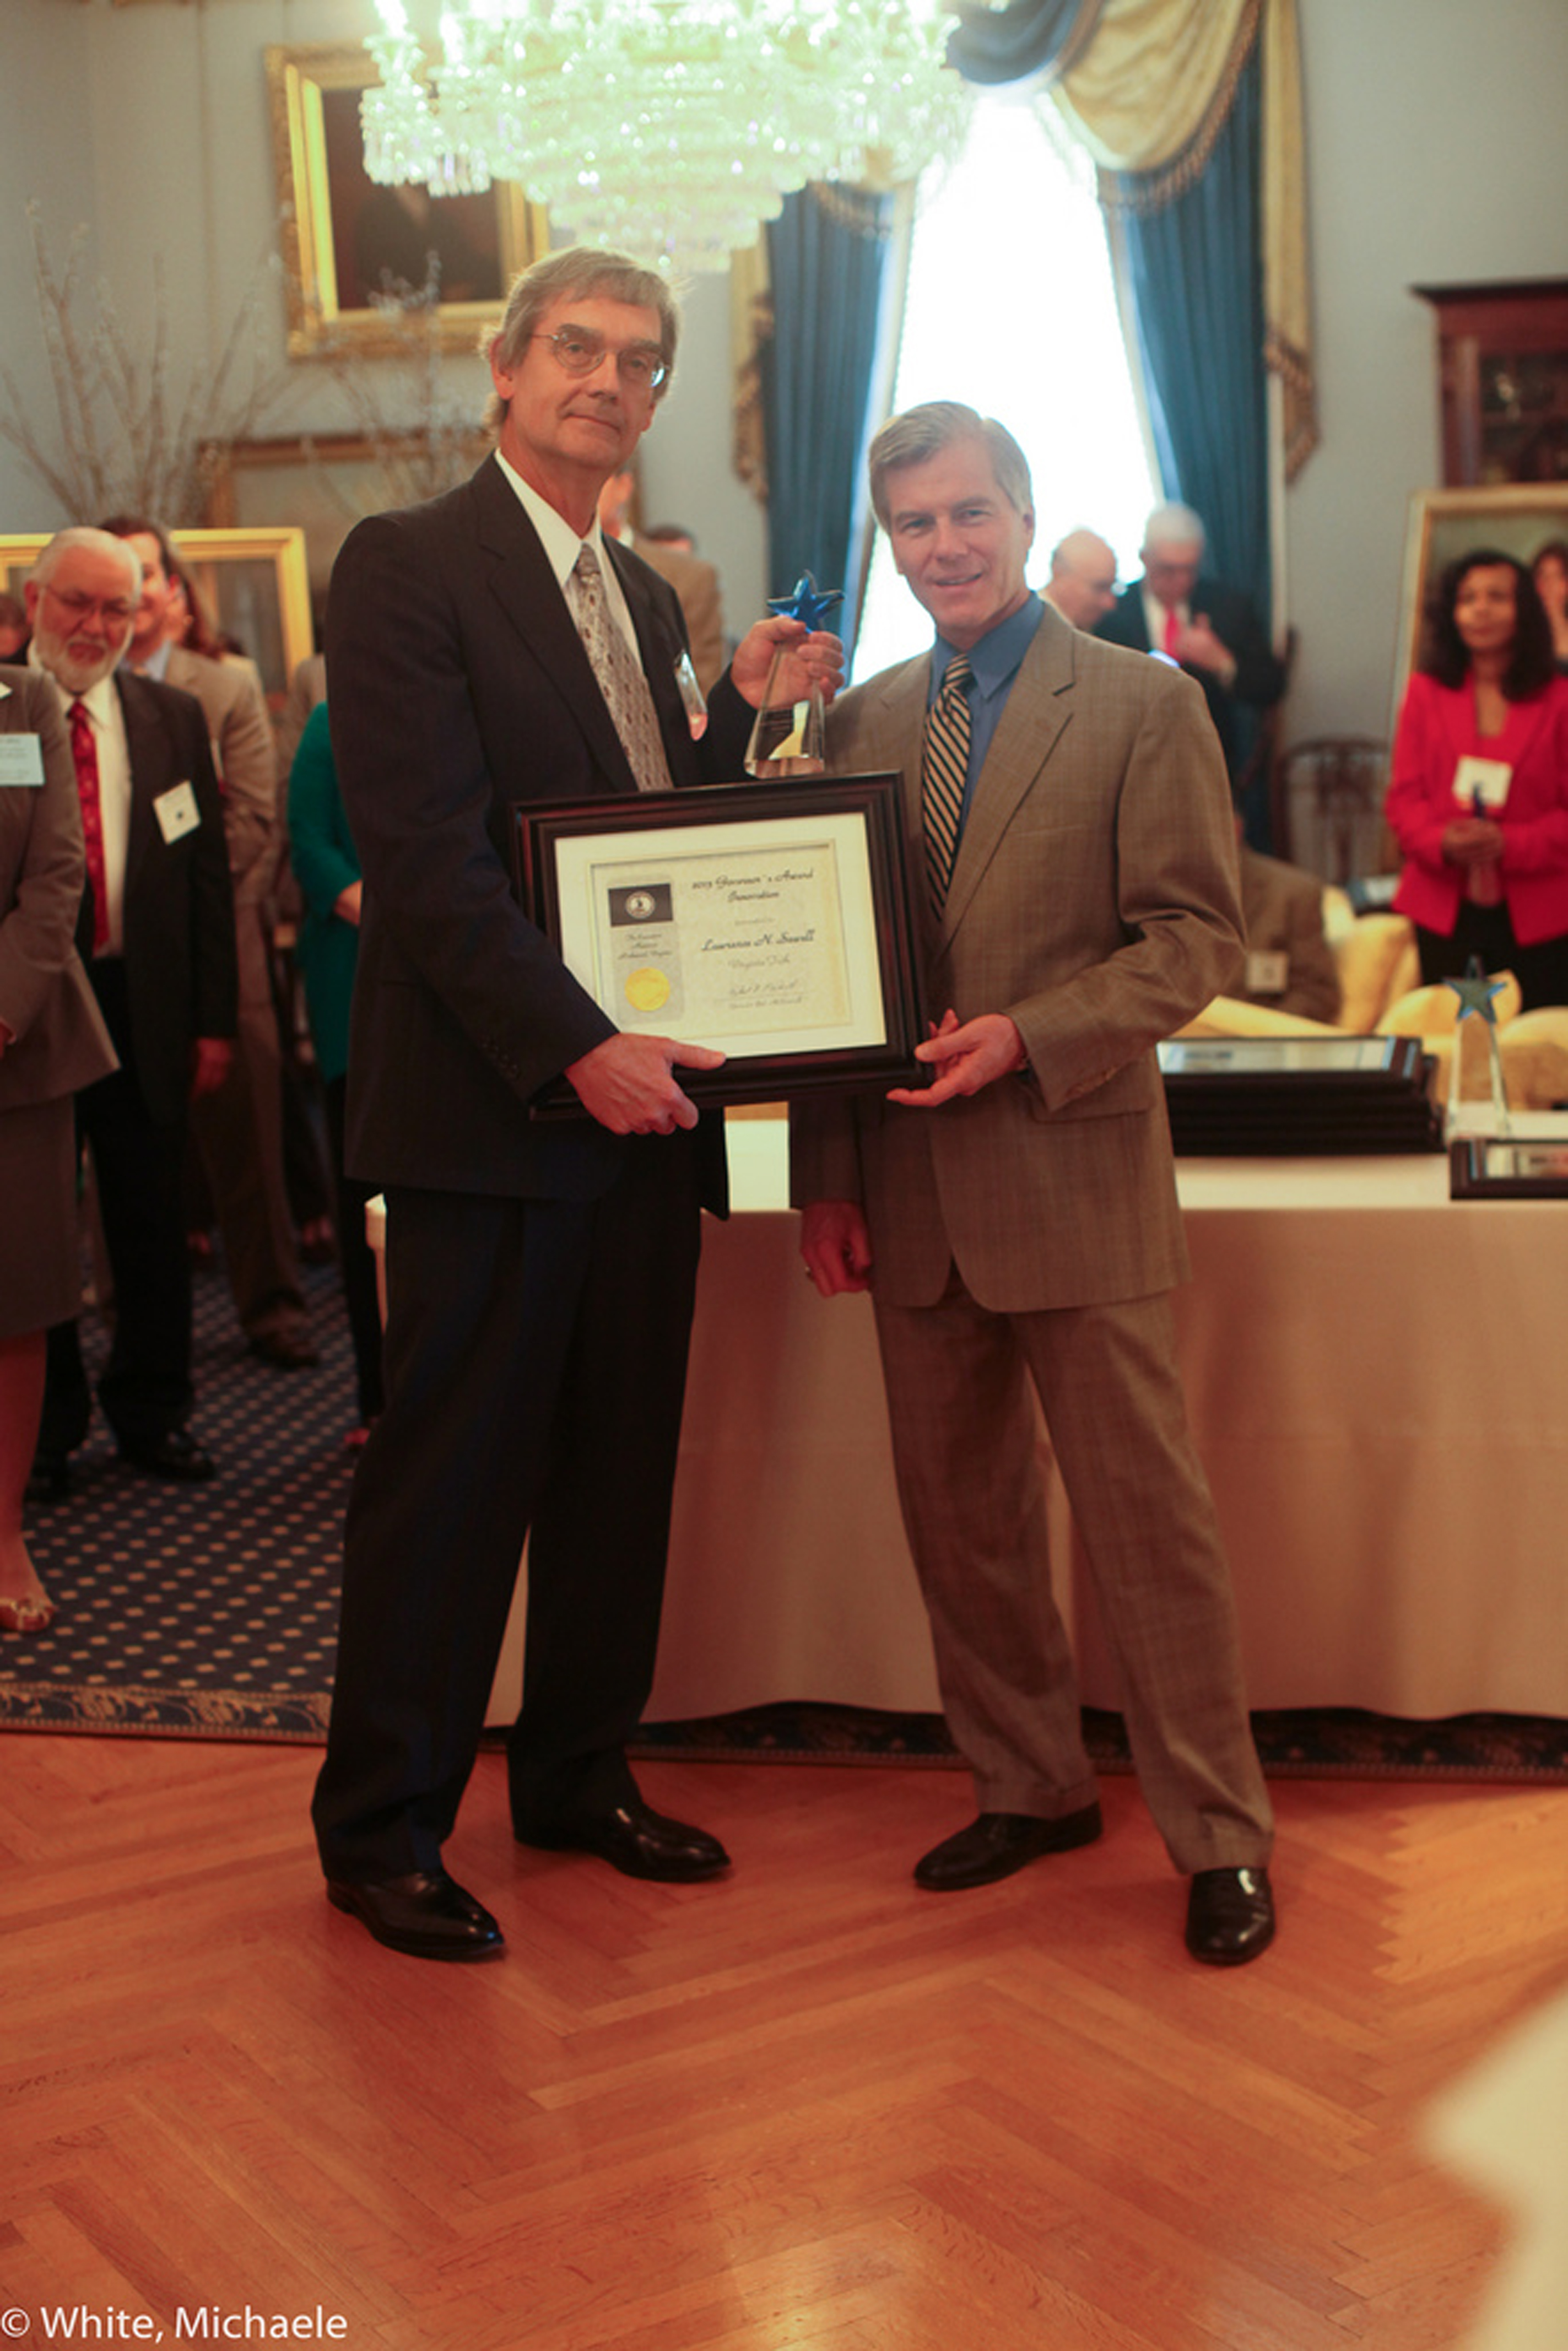 Gov. Bob McDonnell presented Lawrence Sewell with the Governor's Award for Innovation during a ceremony at the Executive Mansion in Richmond, Va., on June 28.